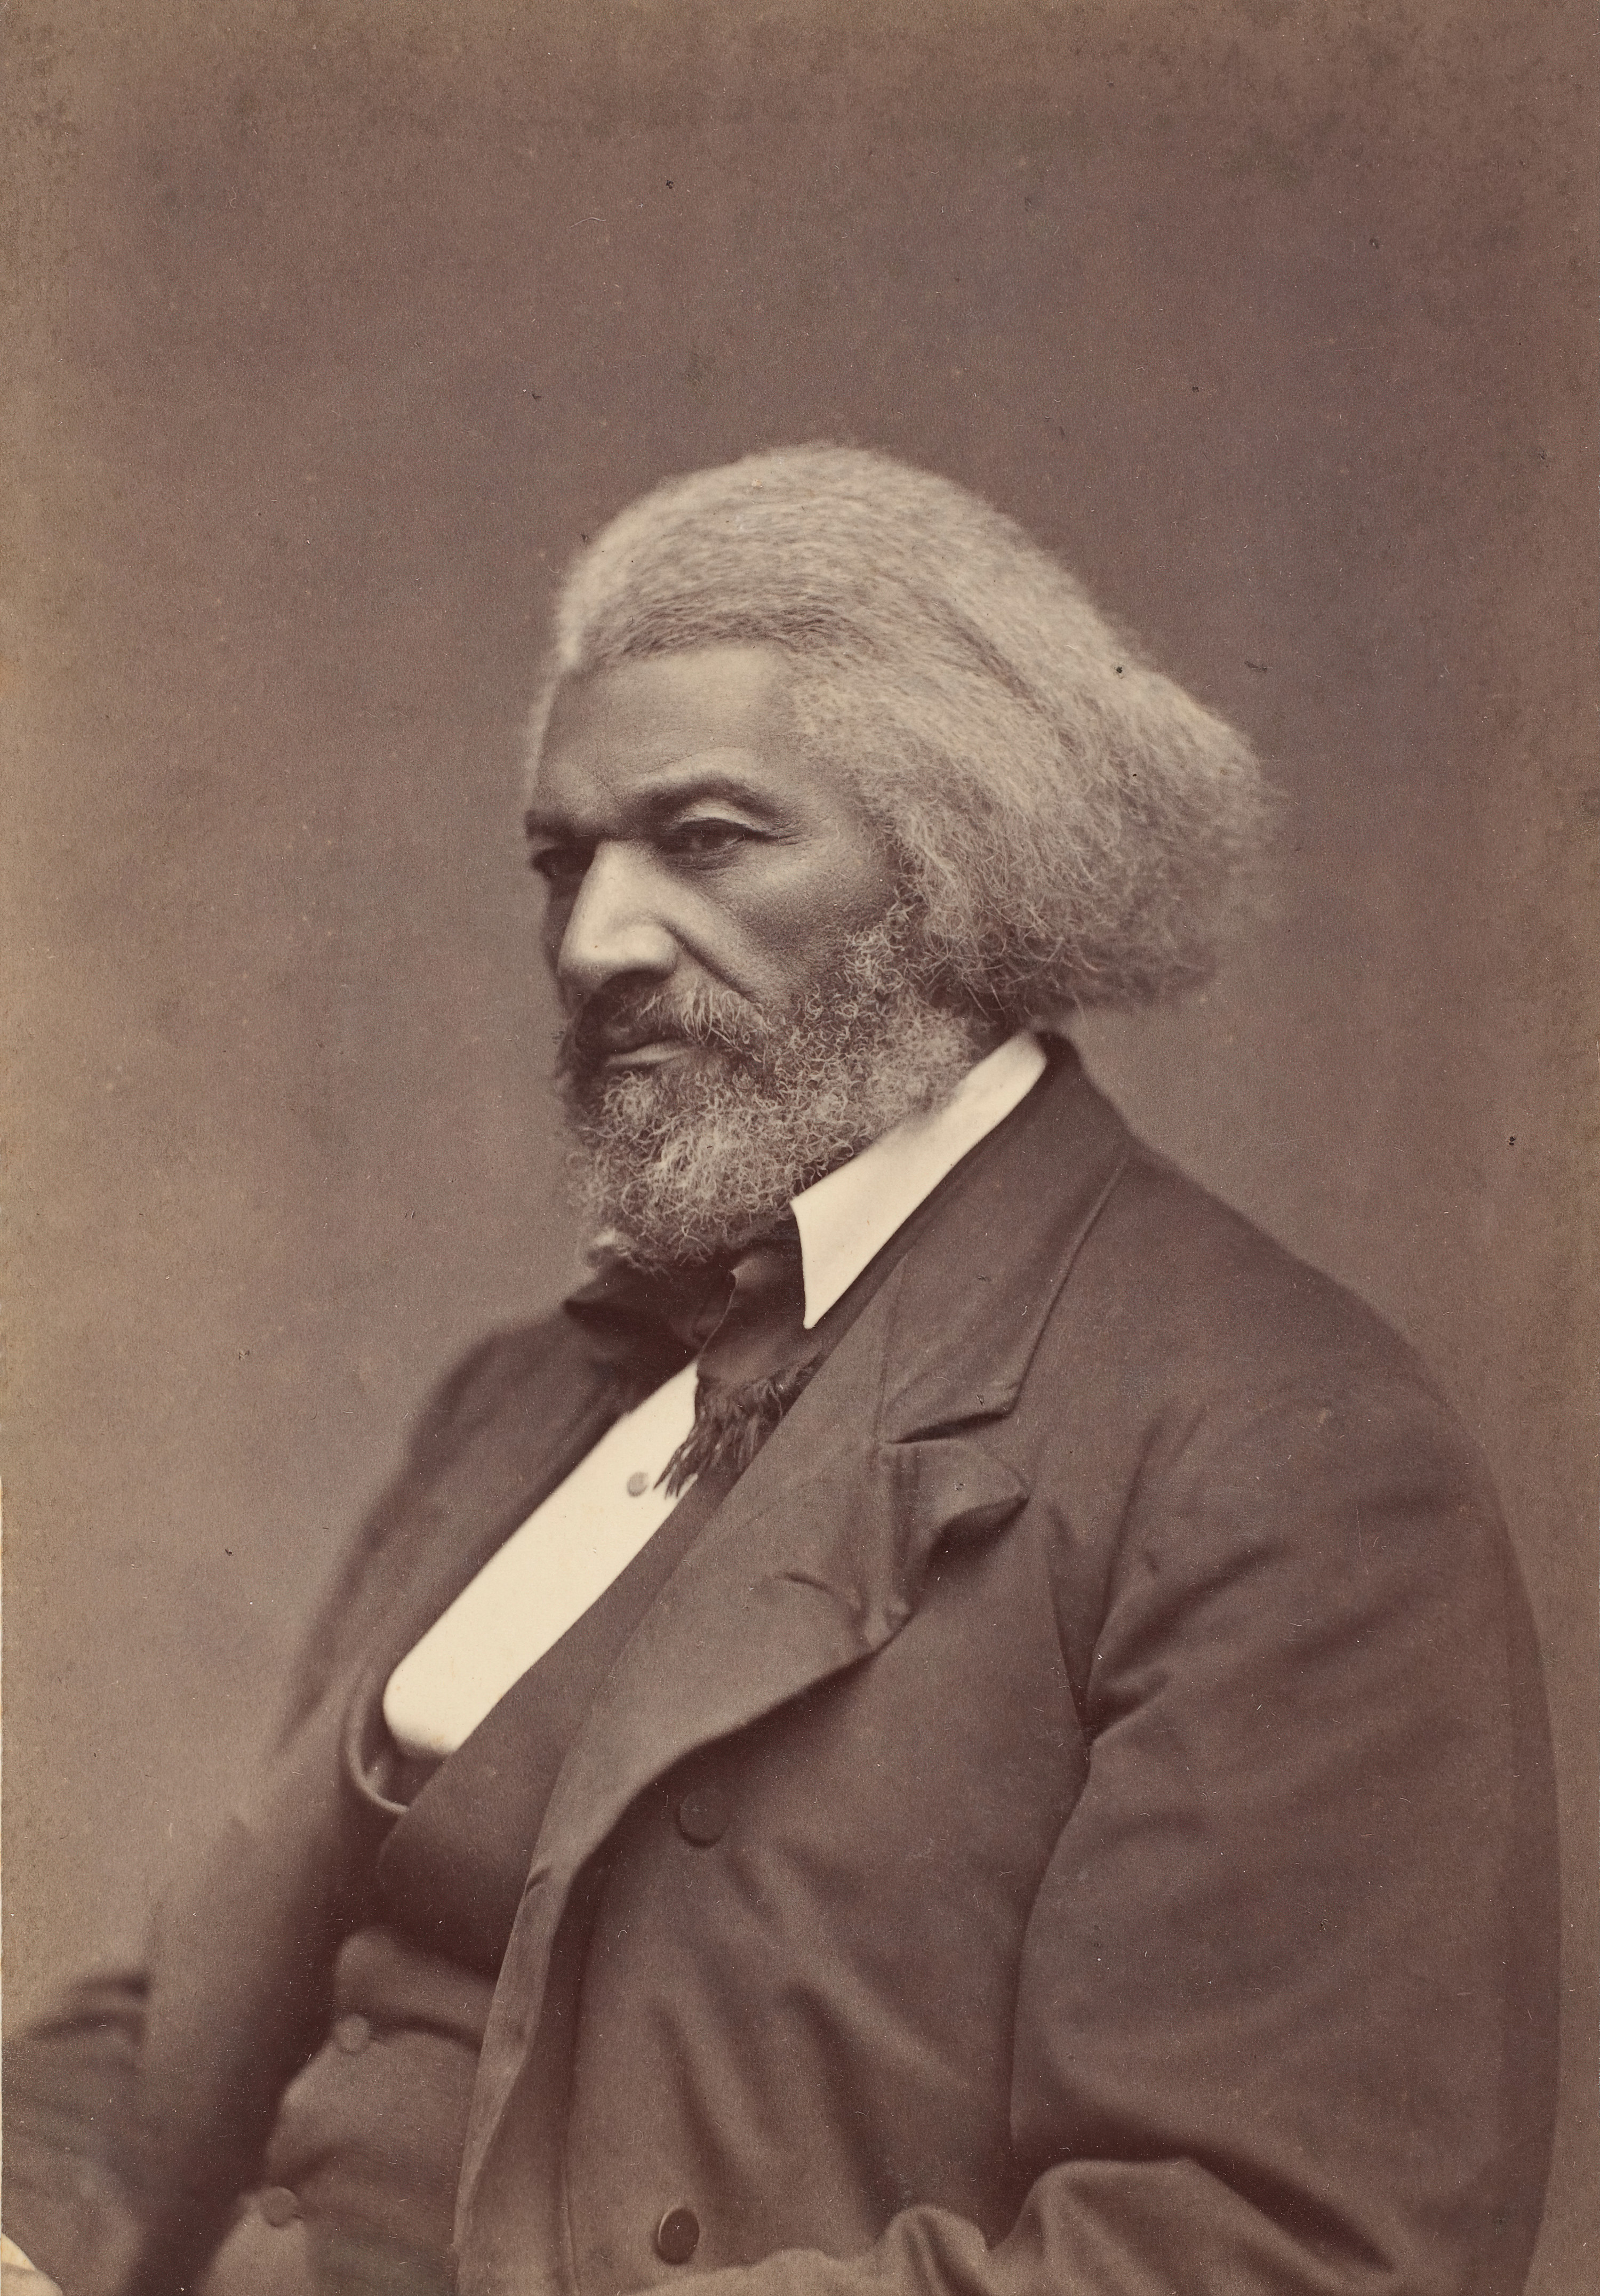 A man is wearing a suit in a profile portrait photo.